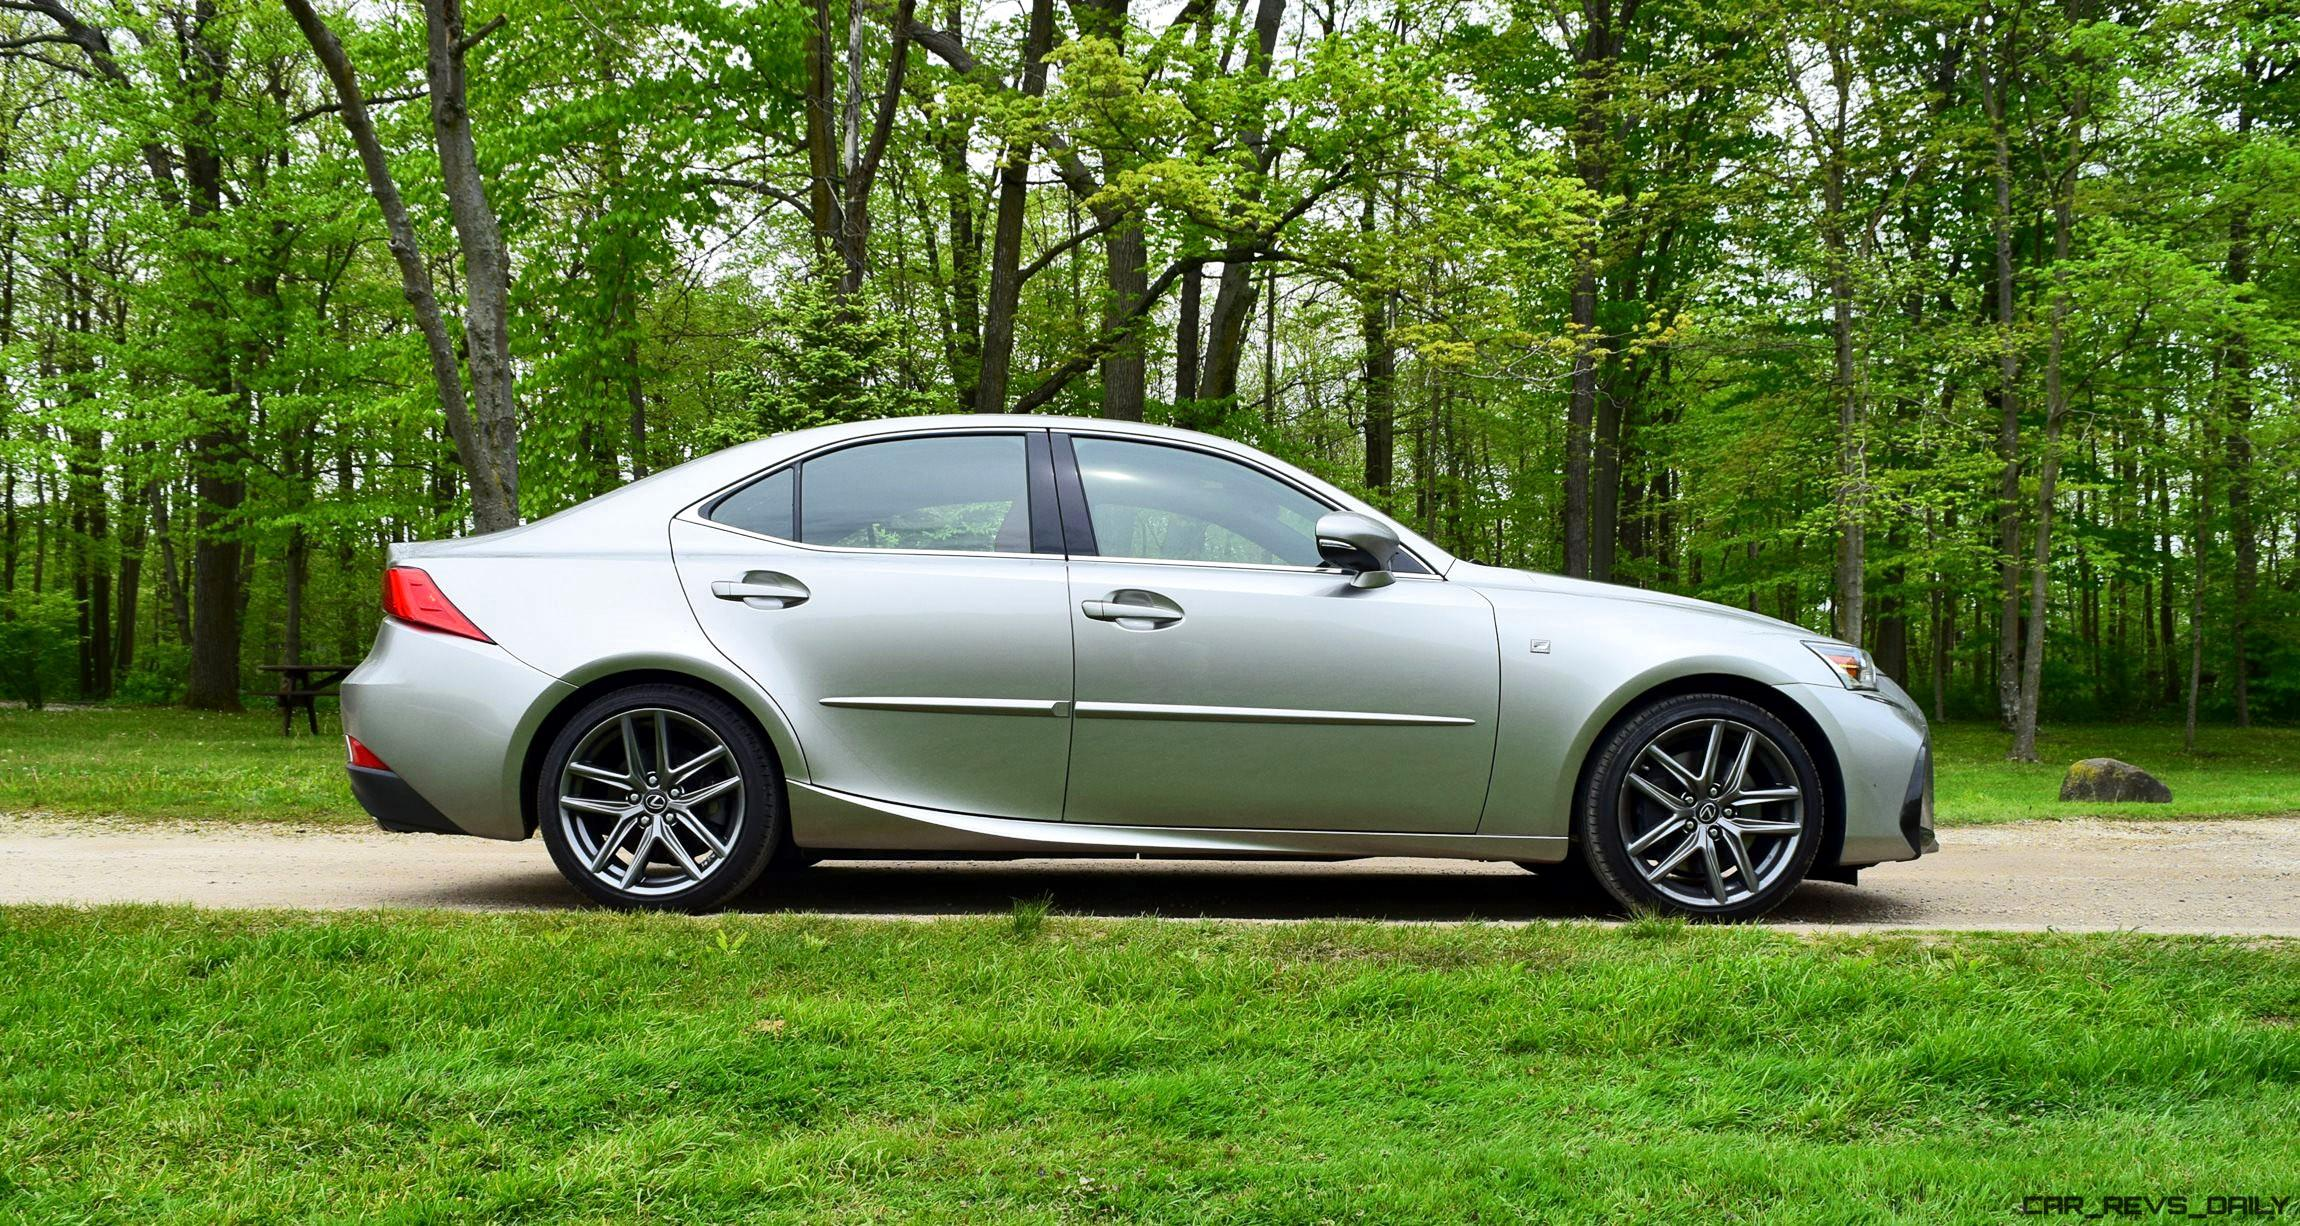 Lexus Is 350 >> 2017 Lexus IS350 F Sport RWD - Road Test Review + Performance Drive Video » LATEST NEWS